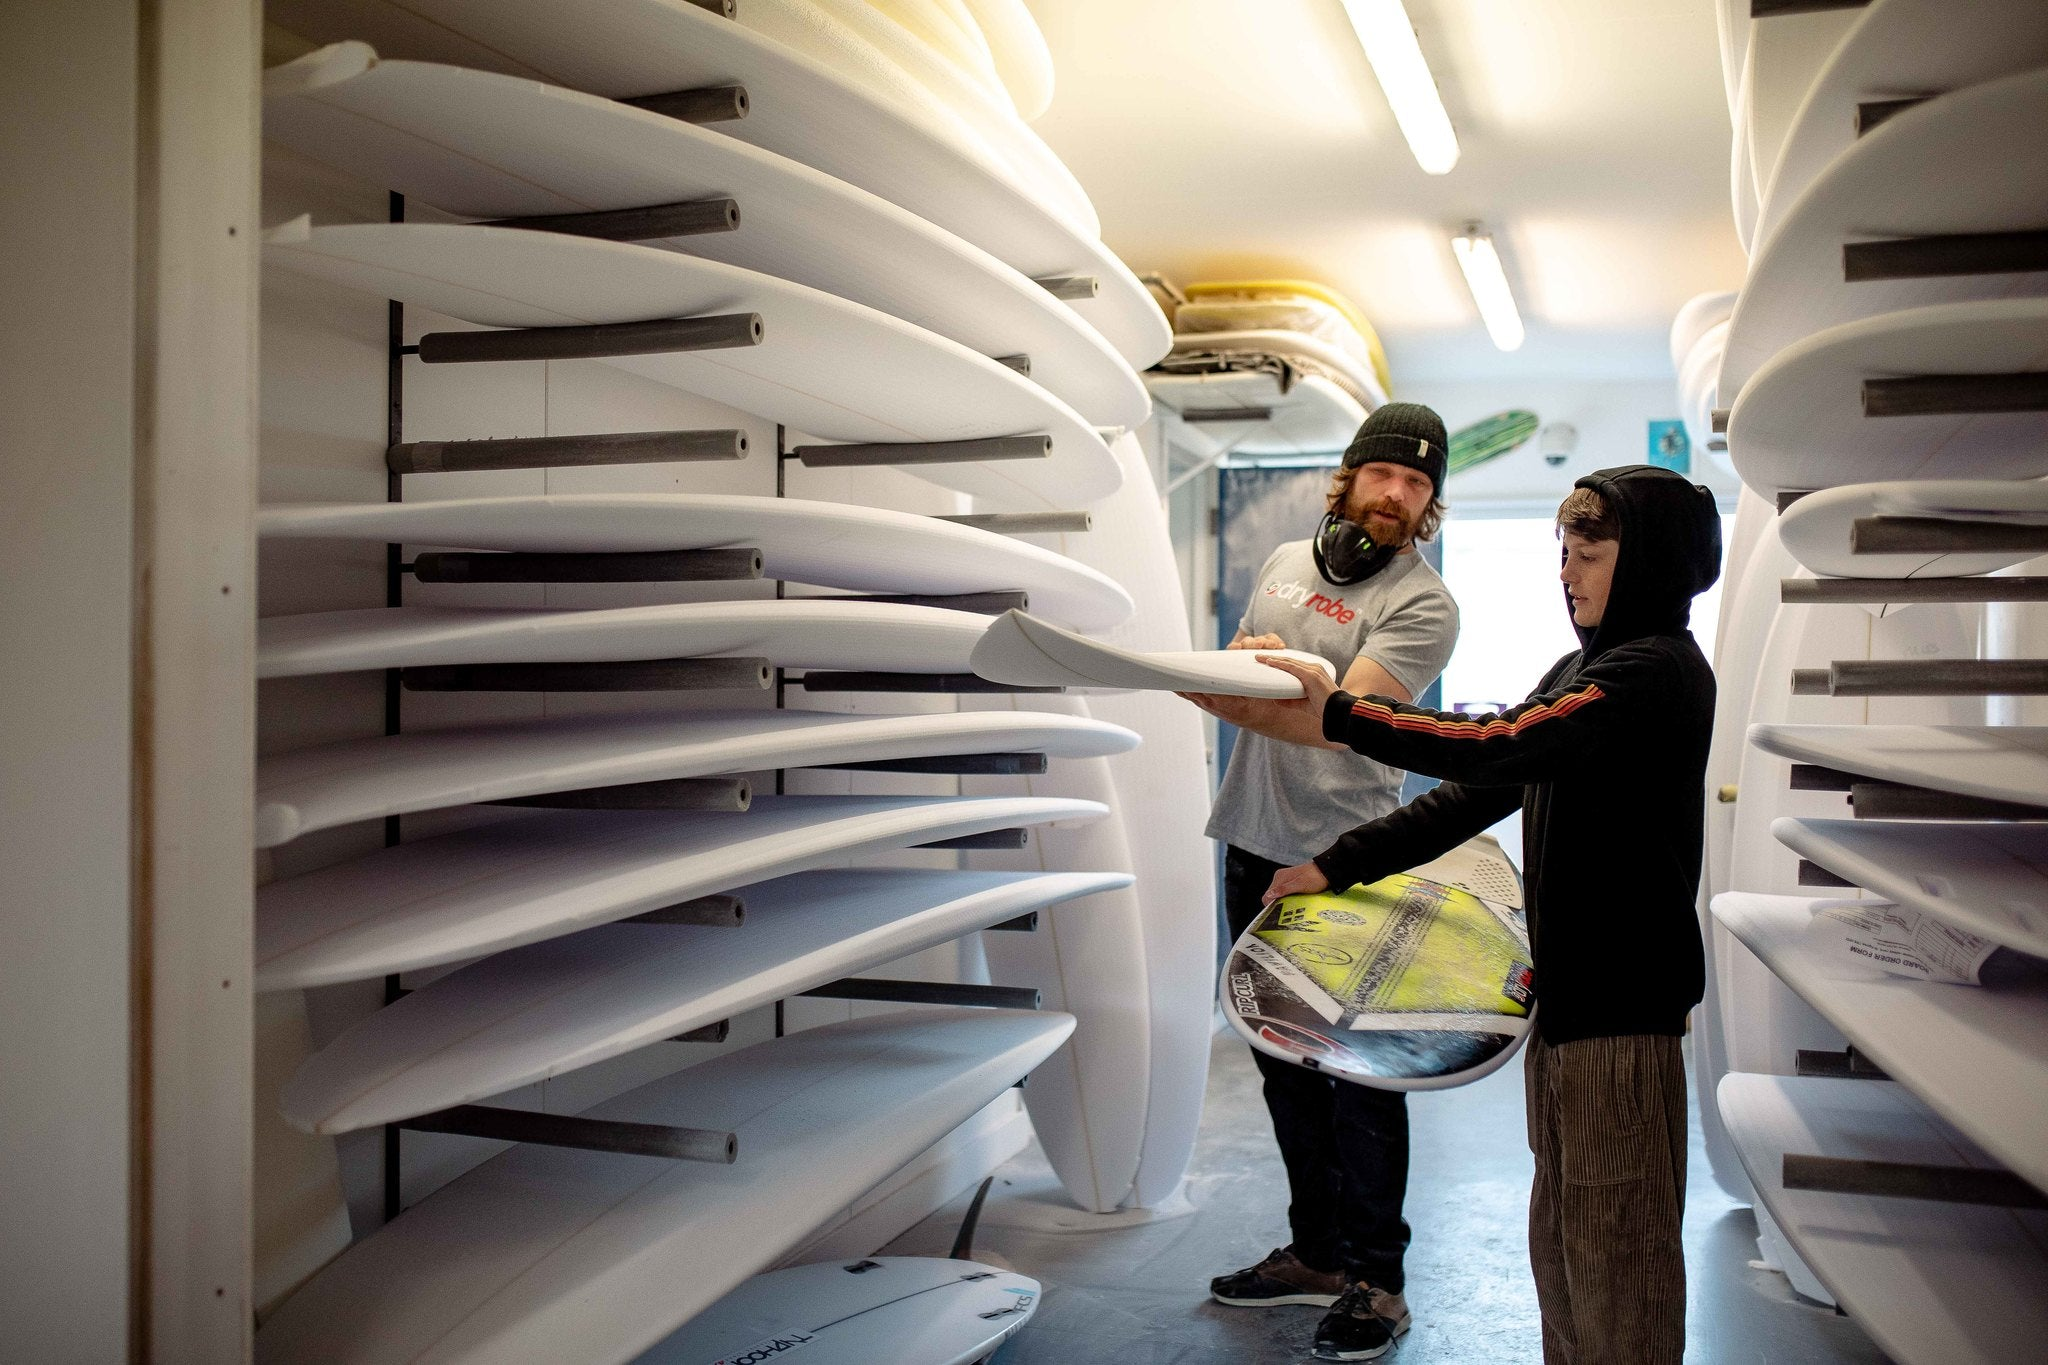 Ben and Lukas Skinner looking at surfboards